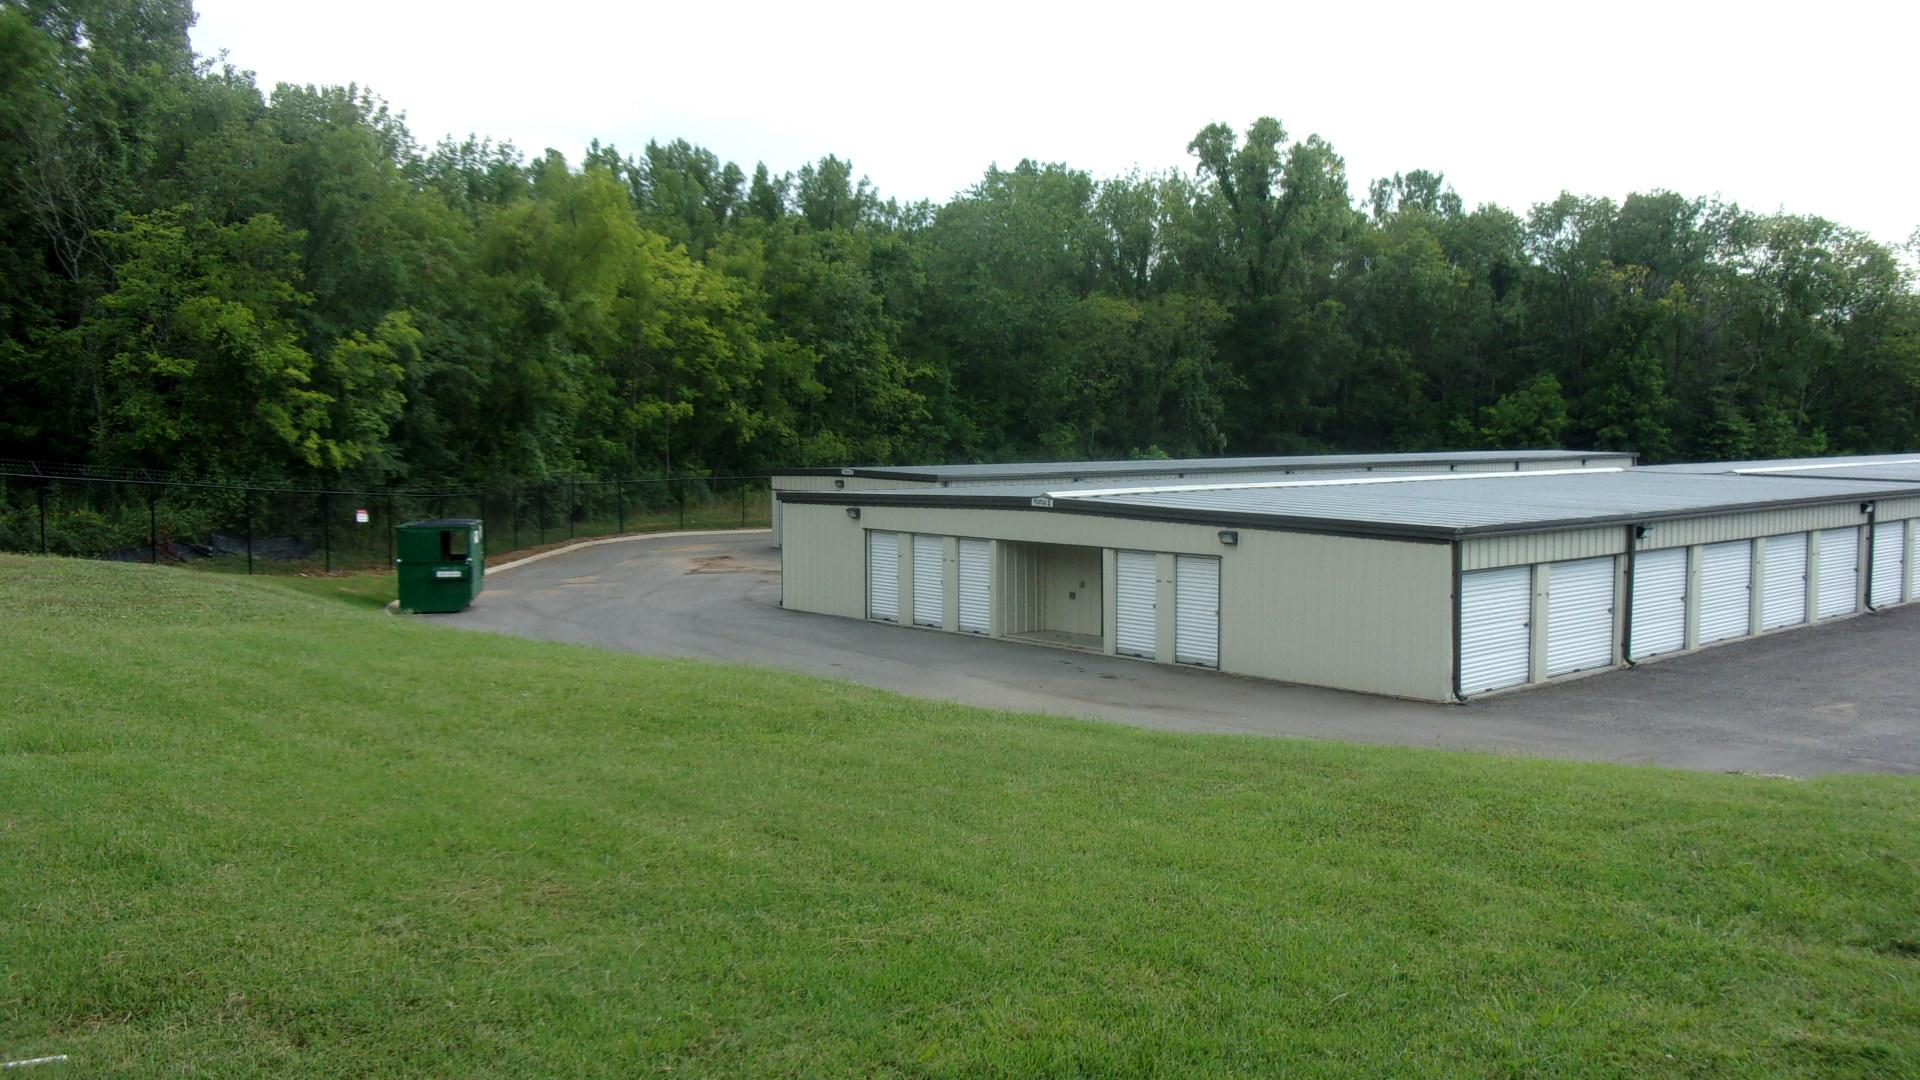 Back Storage Units & Whites Creek Pike Storage | Self-Storage Center Serving Nashville TN